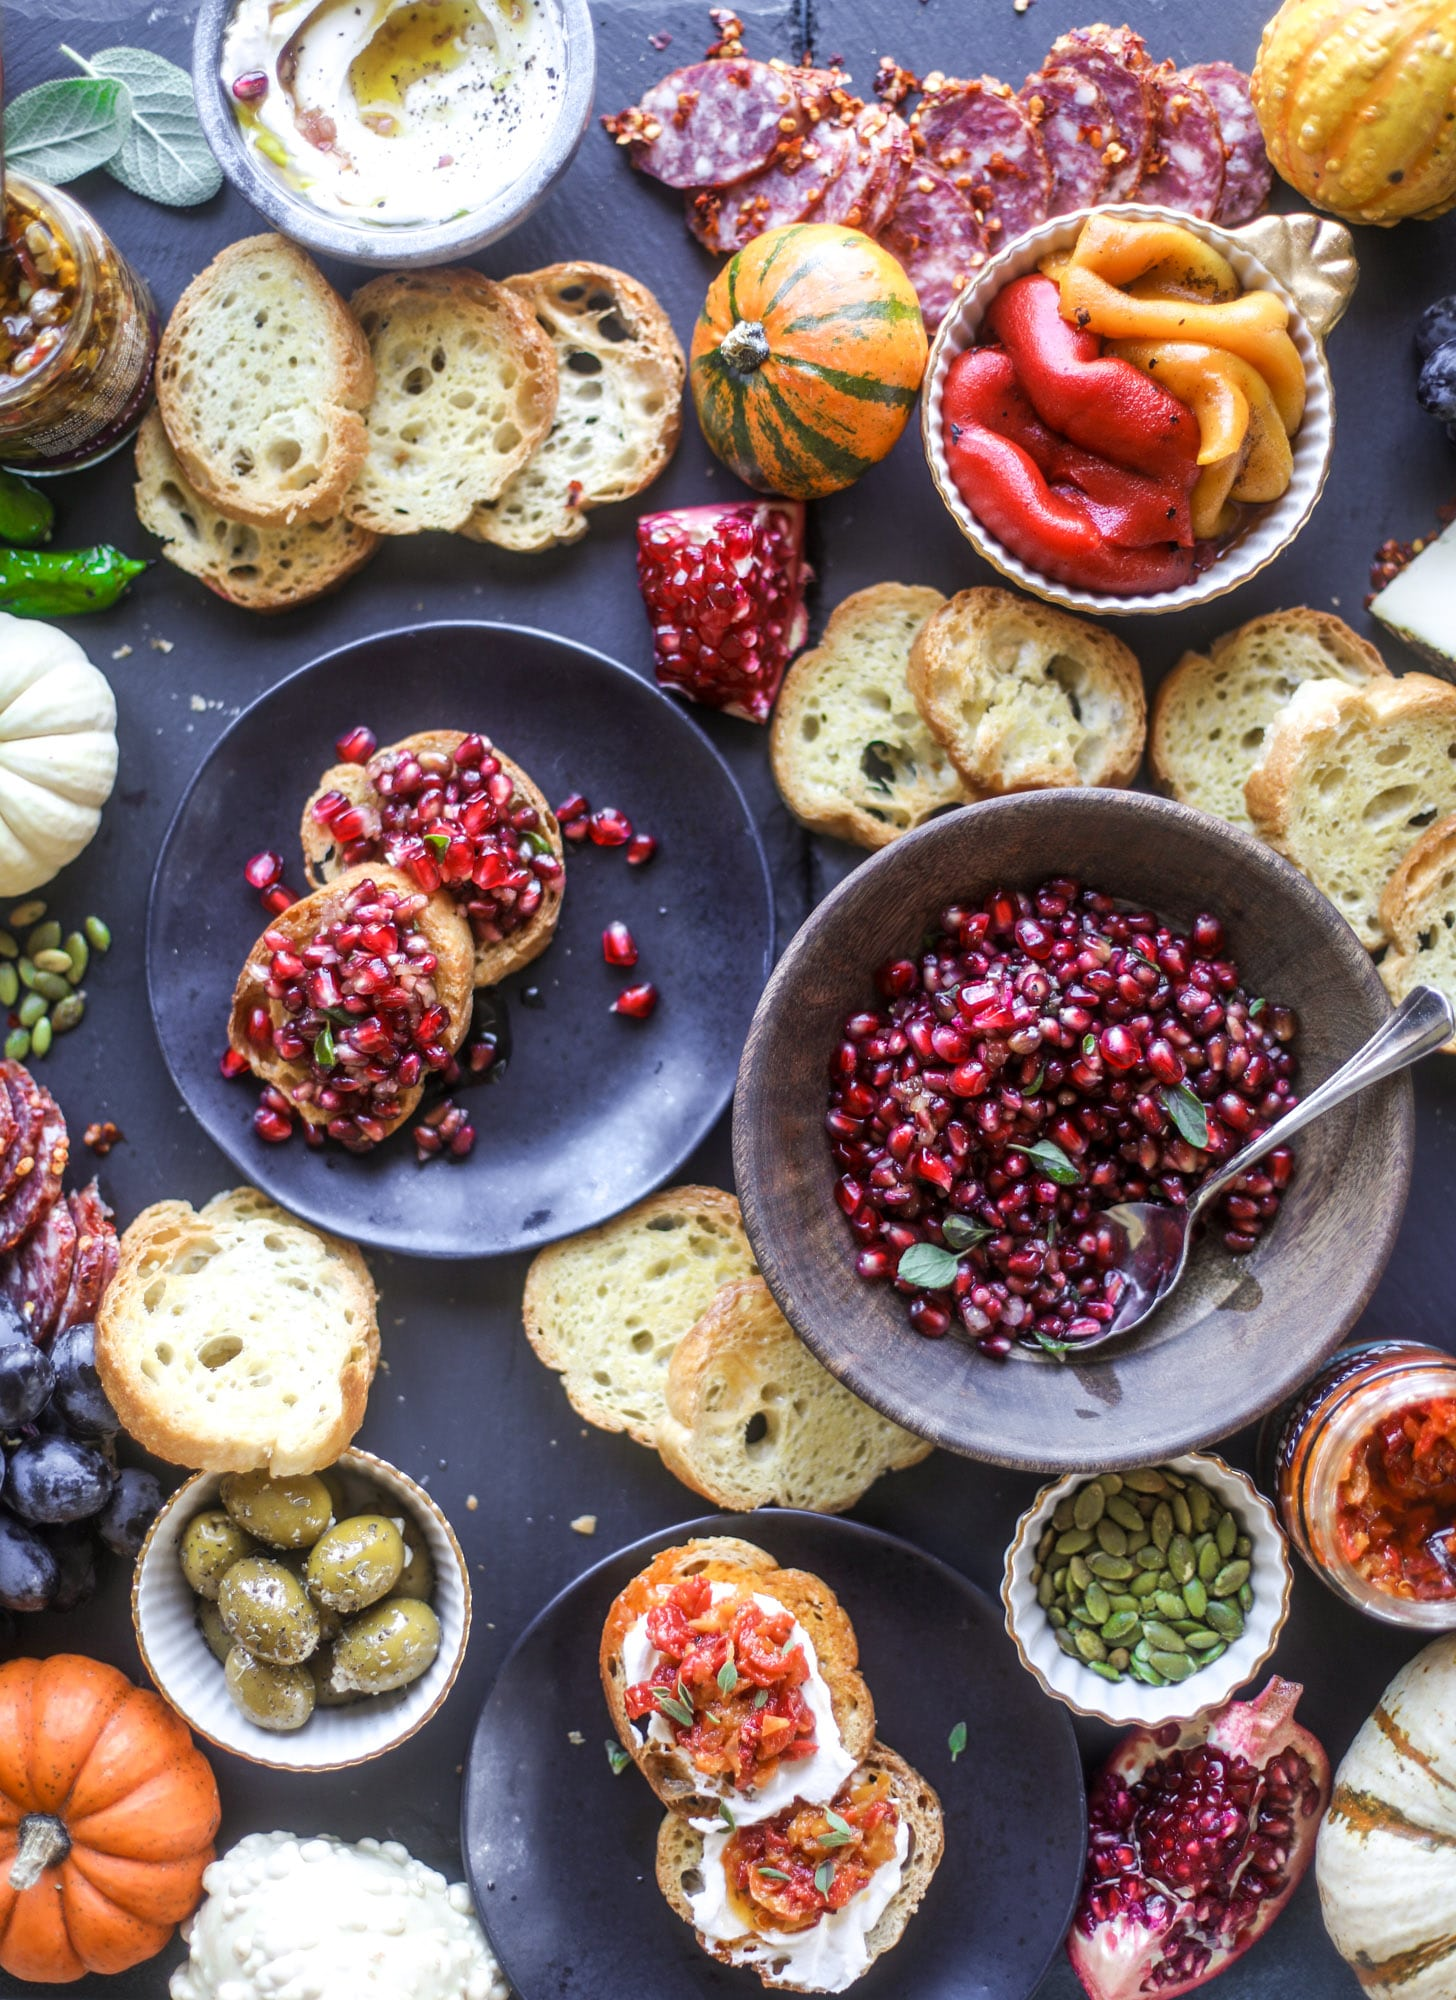 This is the perfect autumn harvest bruschetta board to feed a crowd or serve at a party! The standout is pomegranate relish with a cinnamon shallot vinaigrette, lots of toasty bread, bruschettas, cheese and olives. Everything that's delish! I howsweeteats.com #bruschetta #board